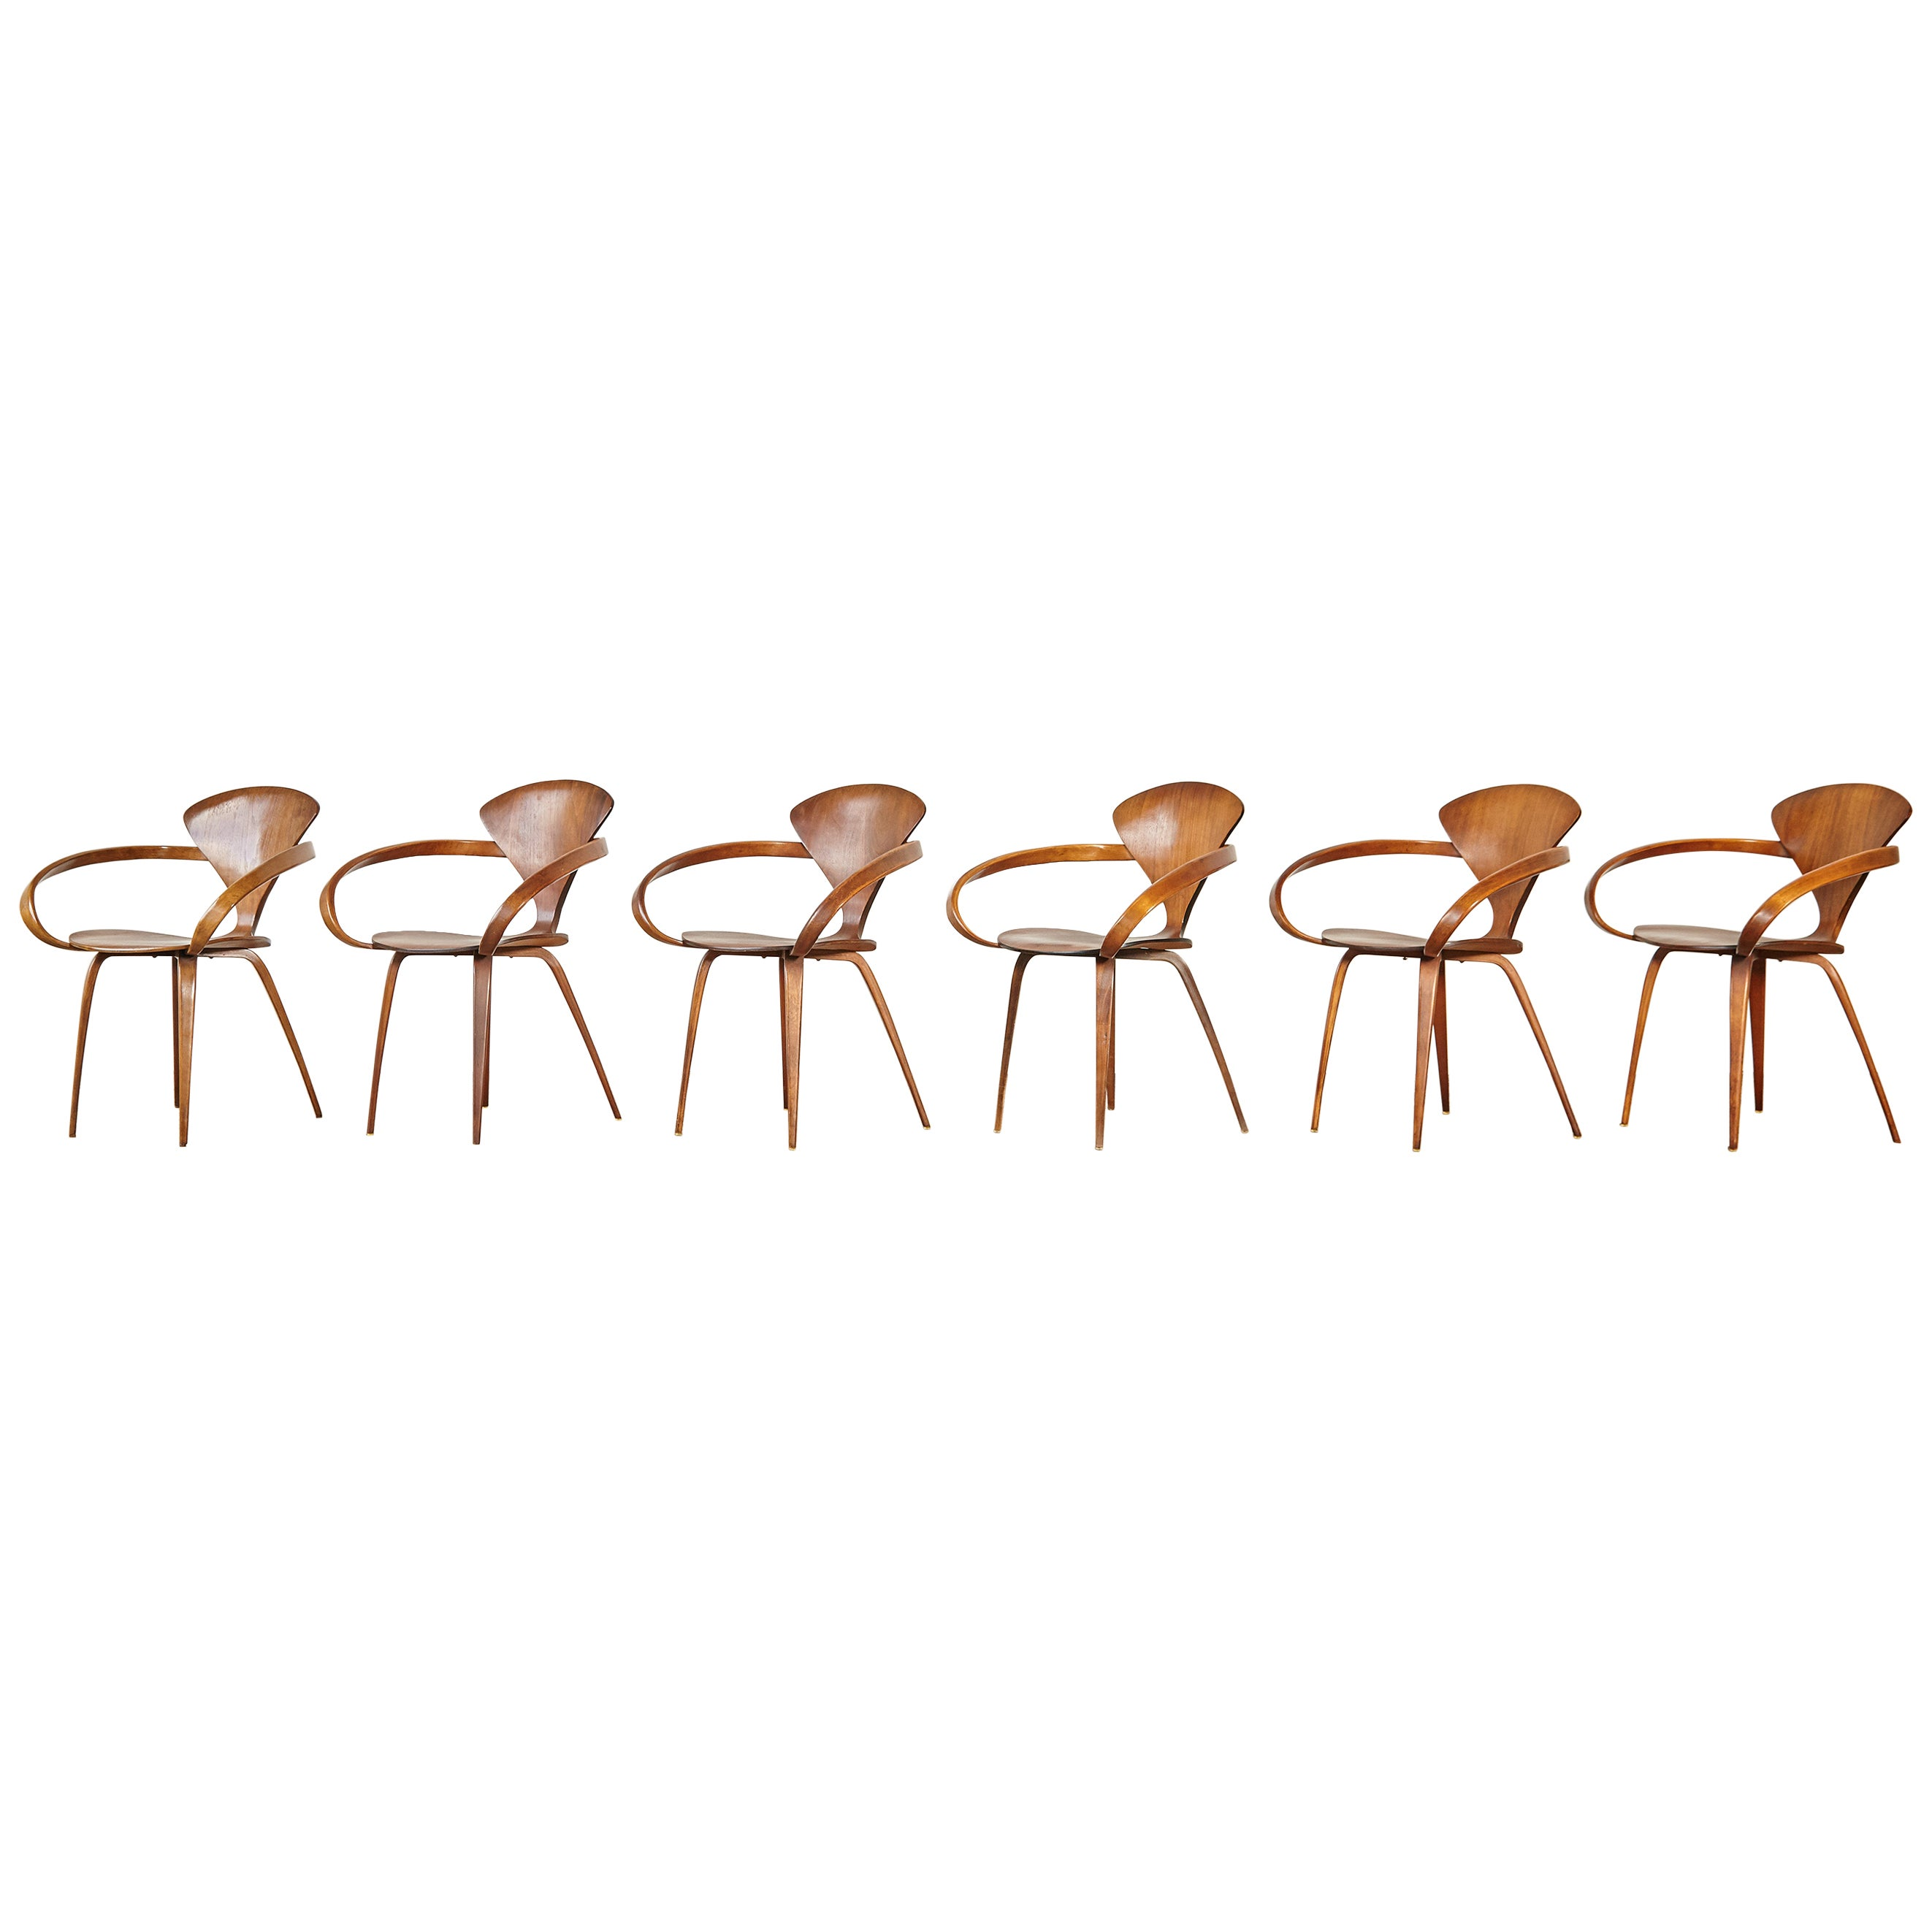 Set of Six Norman Cherner Pretzel Dining Chairs, Made by Plycraft, USA, 1960s